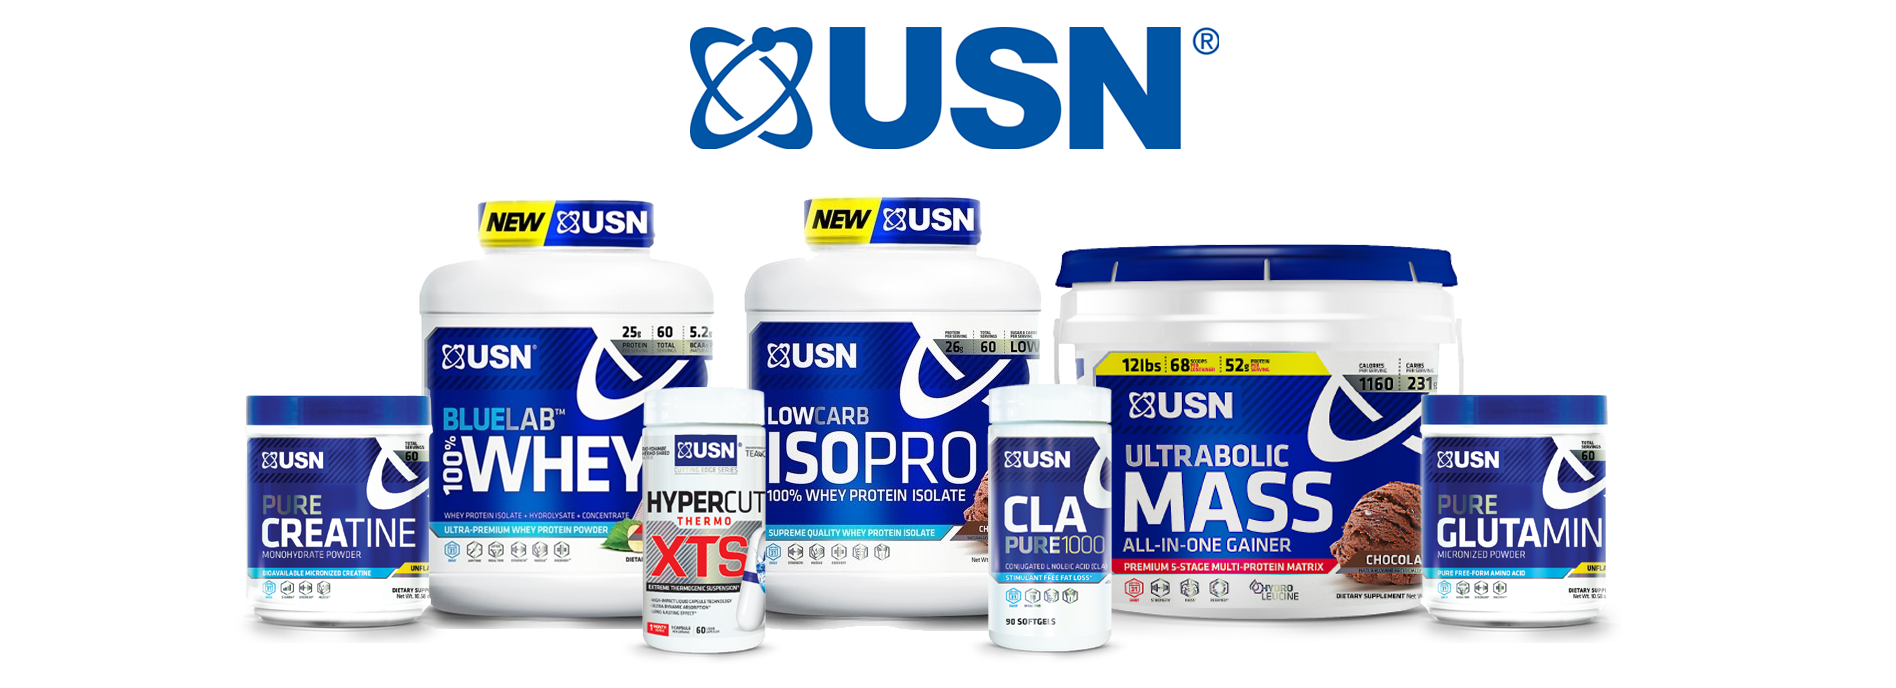 usn-website-cover